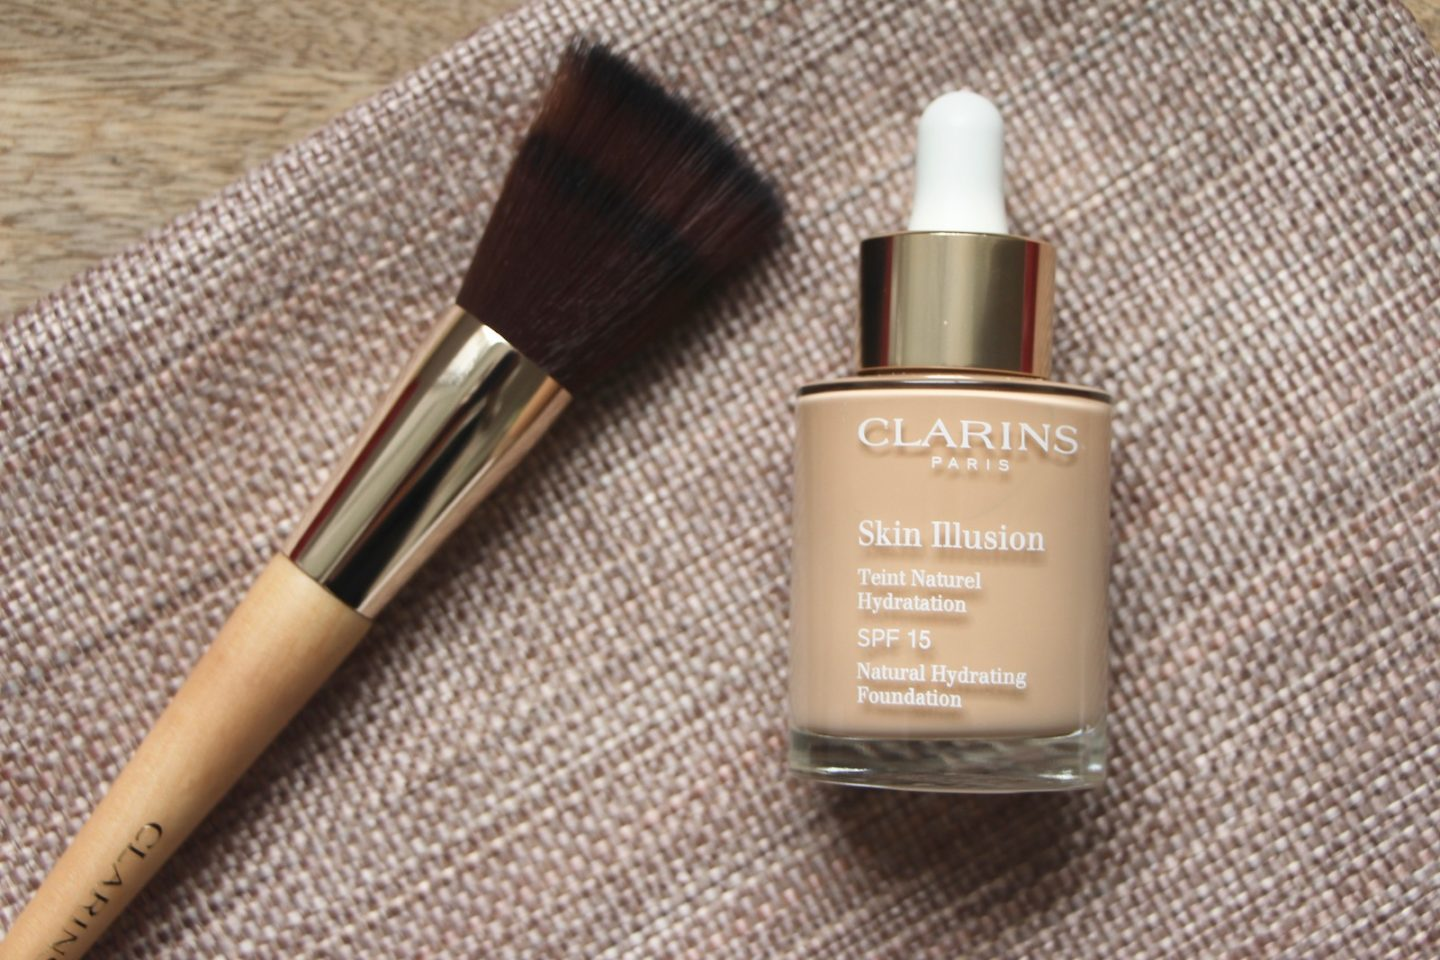 Foundation Review: Clarins Skin Illusion